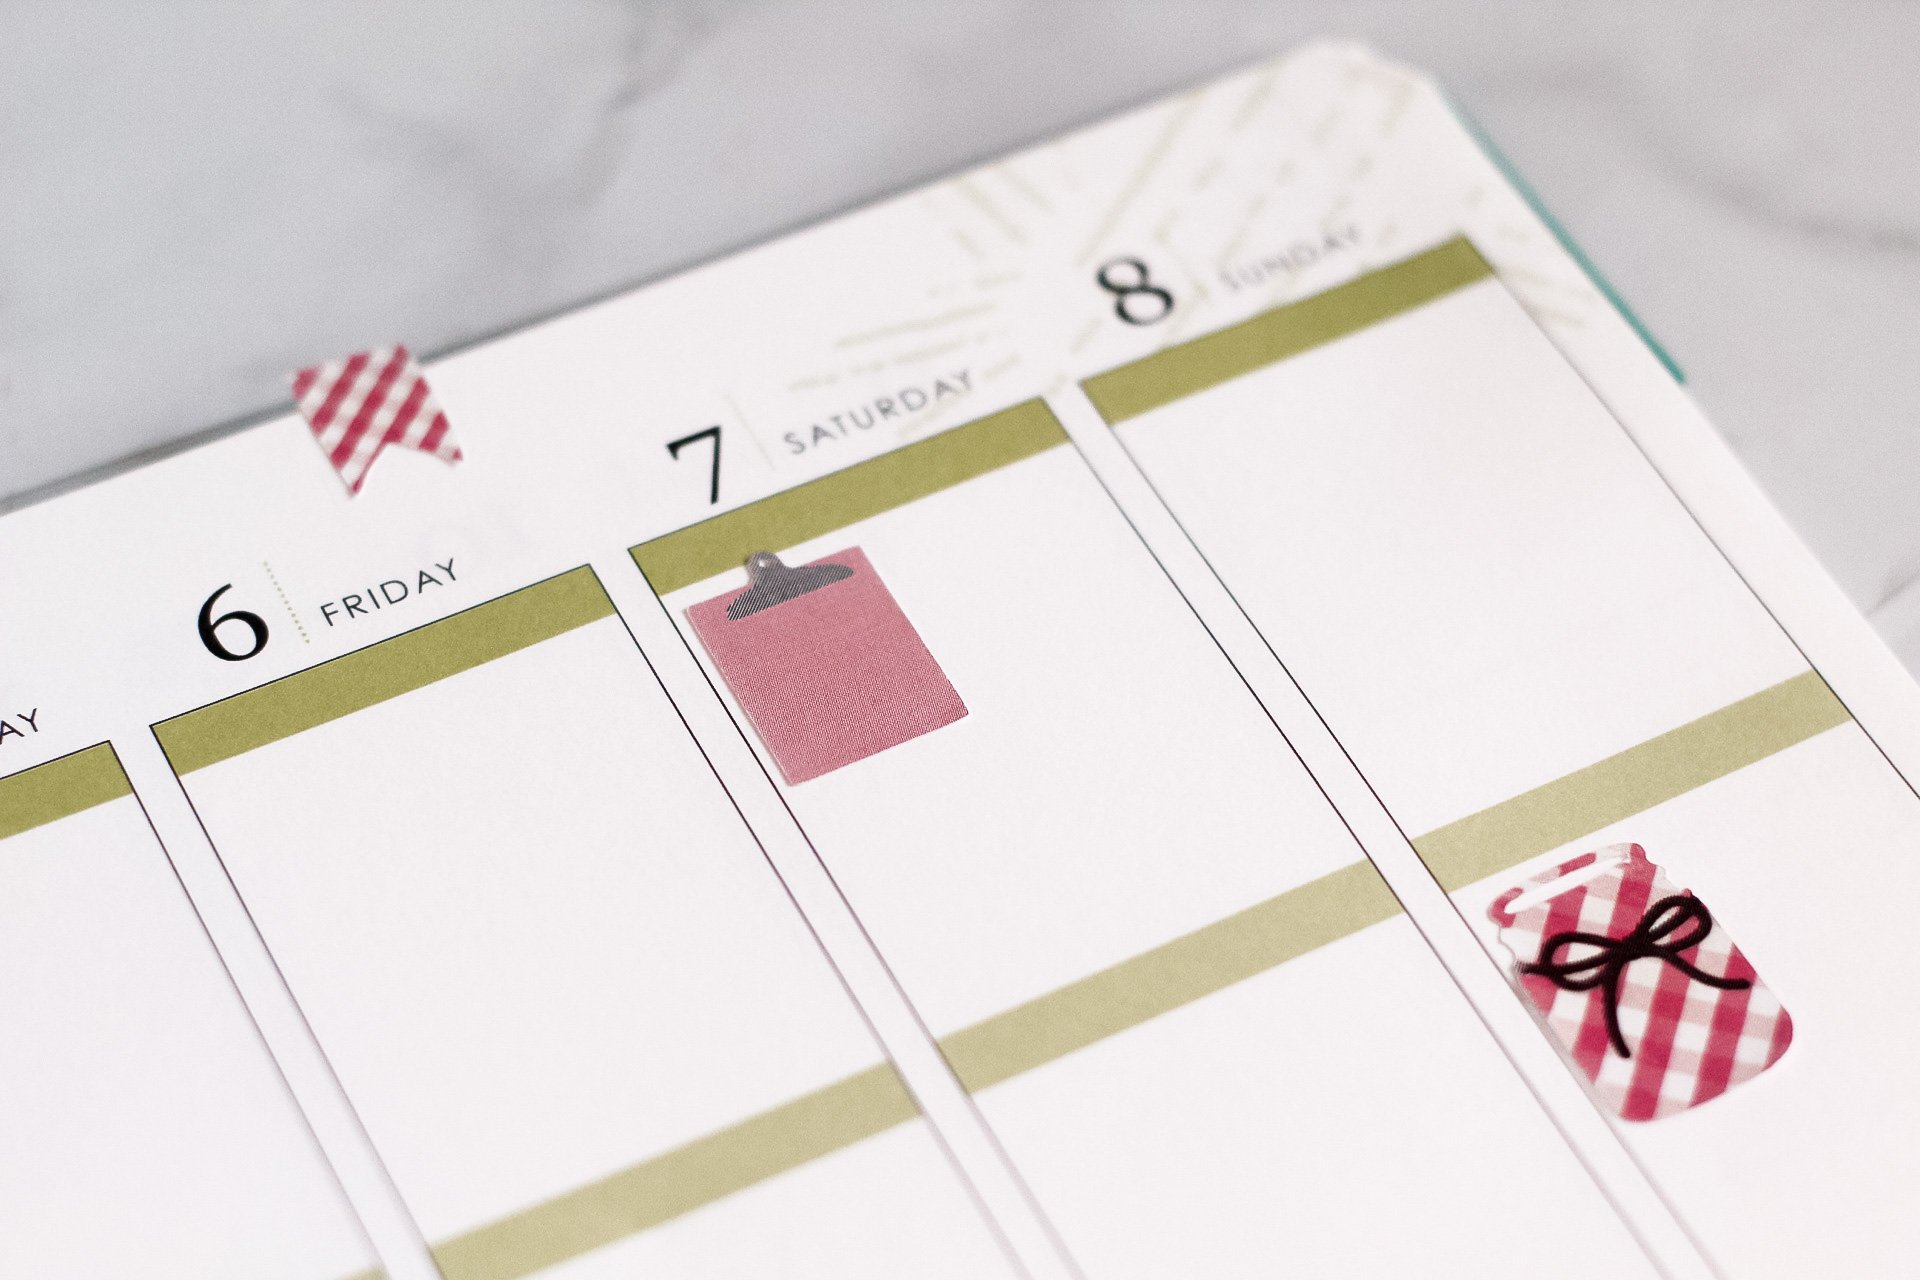 plaid and red stickers on planner page